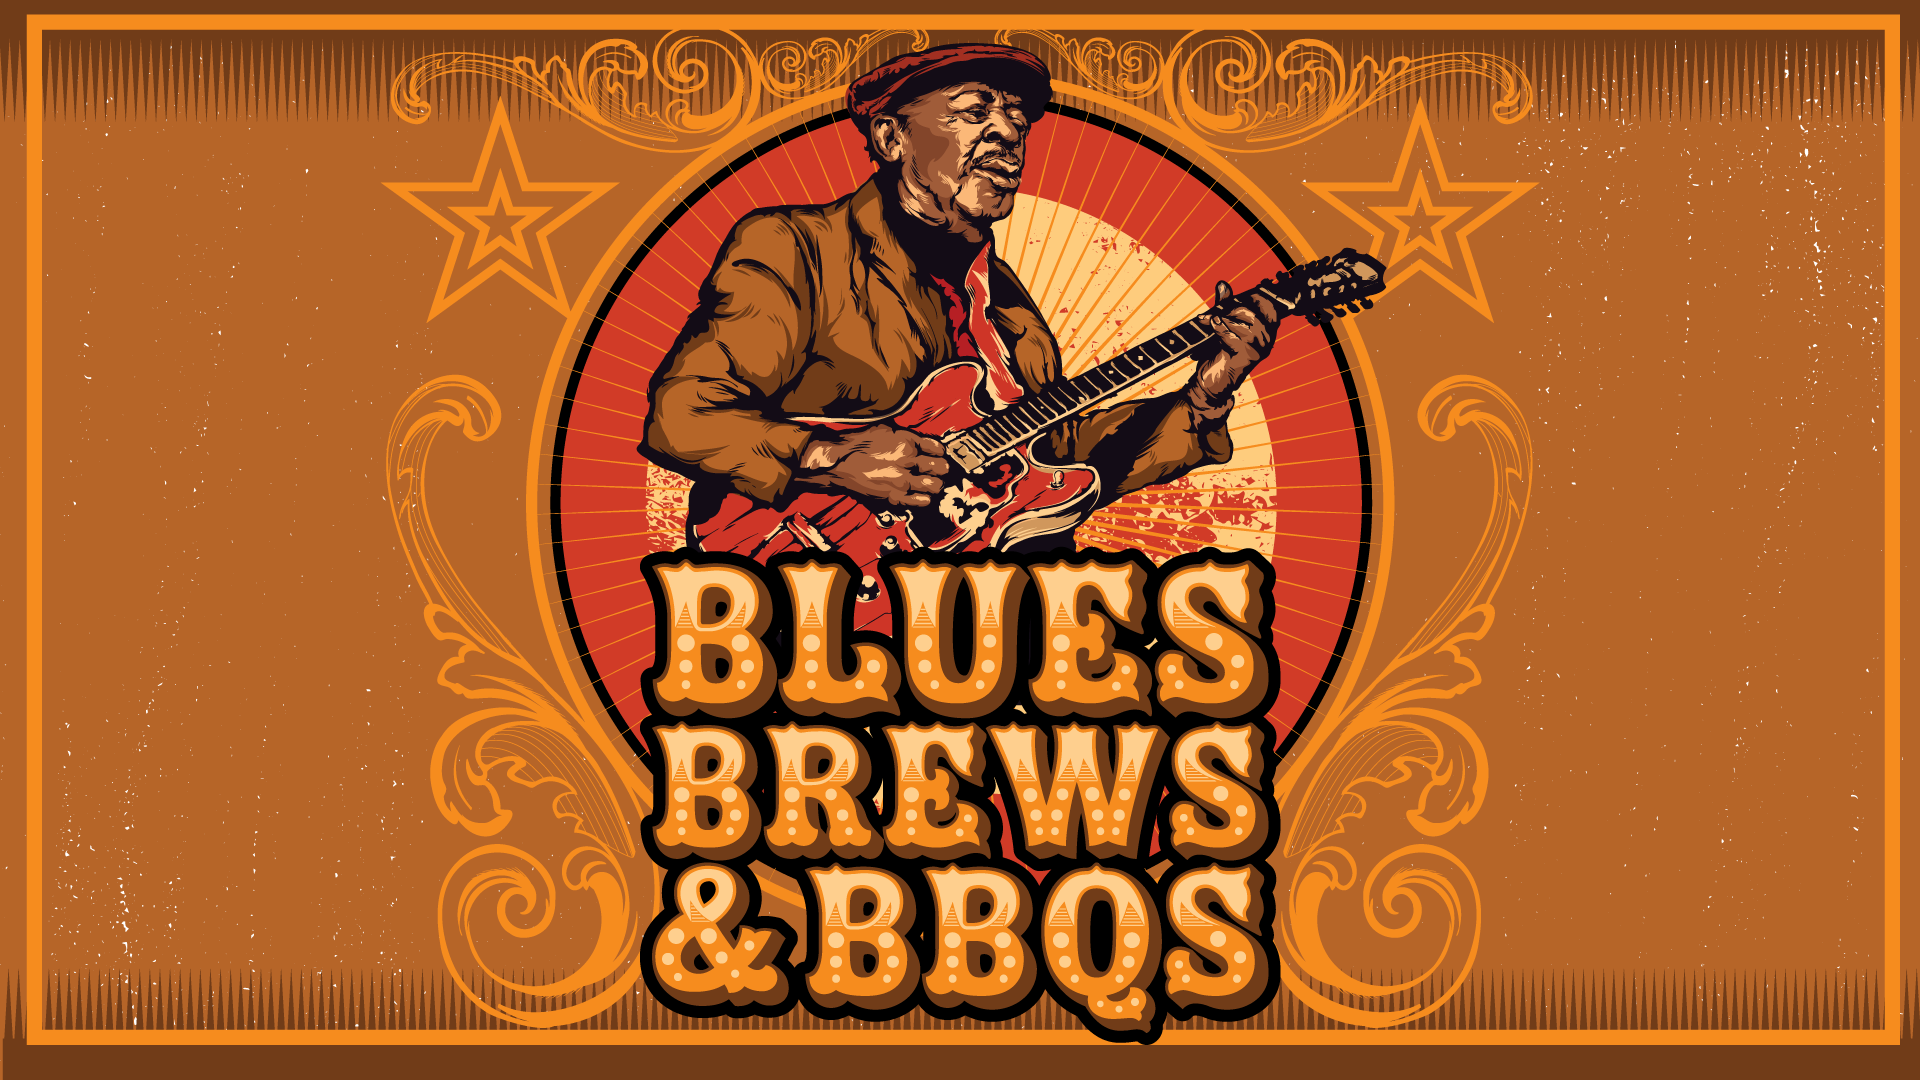 Blues, Brews & BBQ's